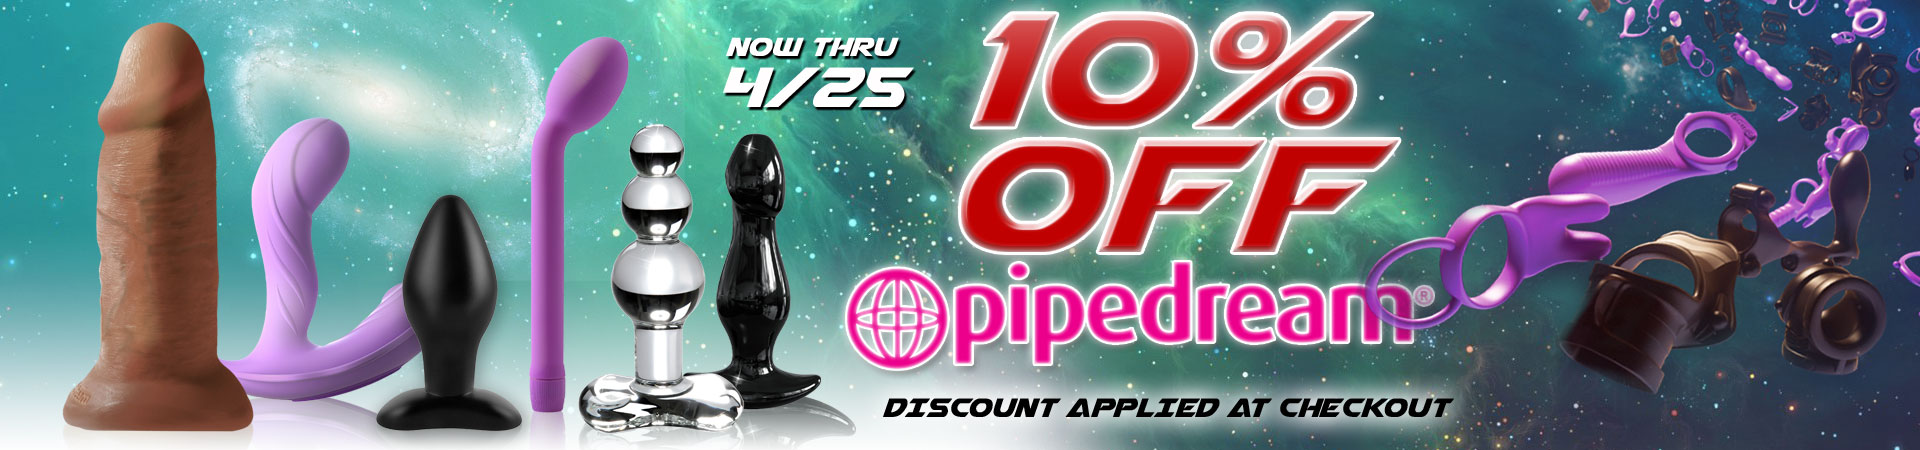 Right NOW at SheVibe! Save 10% on over 390+